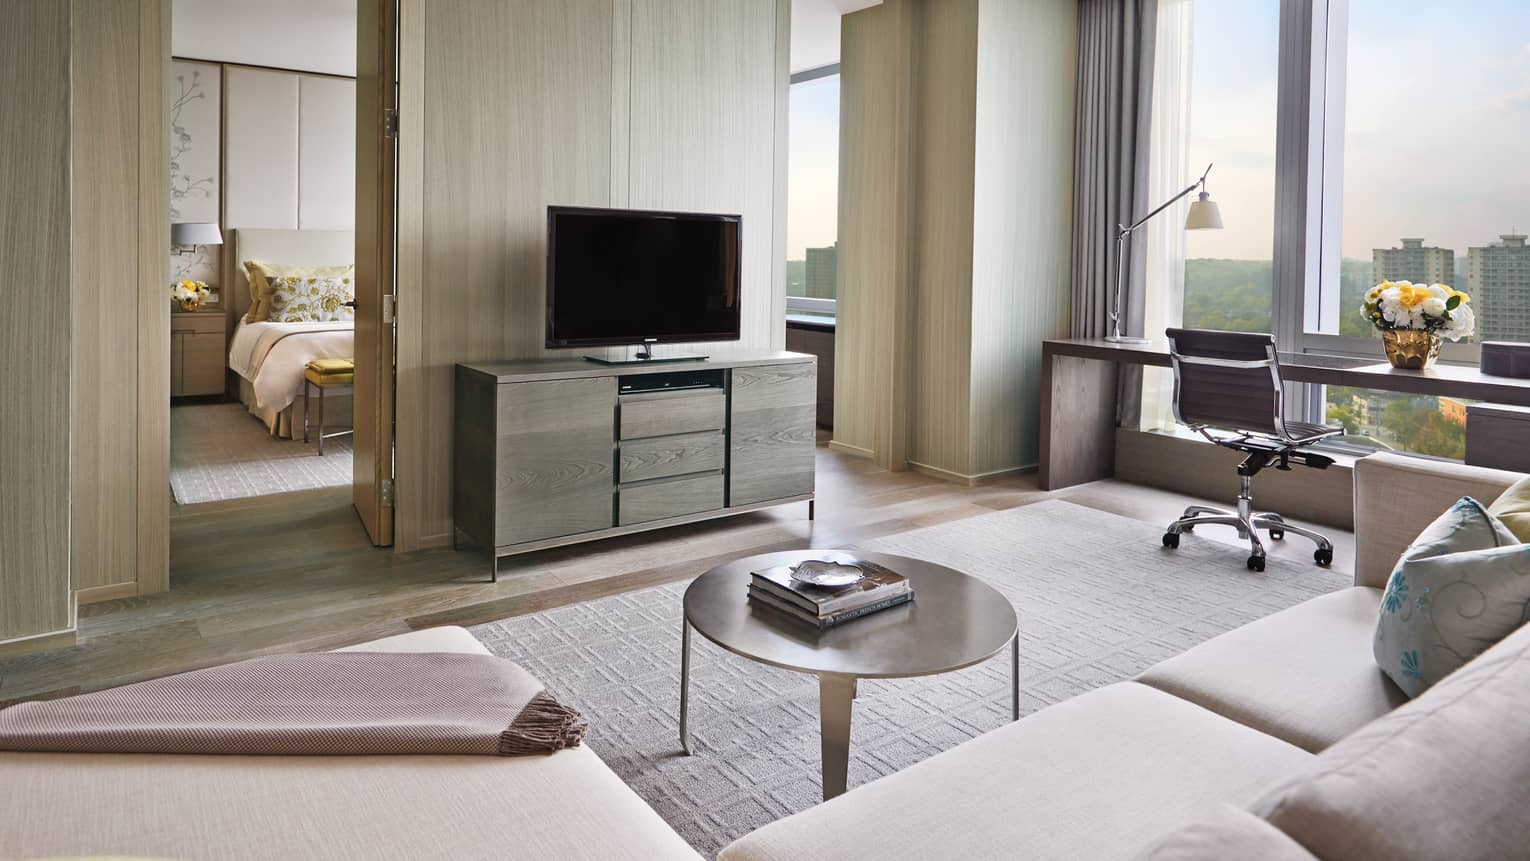 Bright, modern hotel suite, TV against birch wood wall to bedroom, desk by floor-to-ceiling window